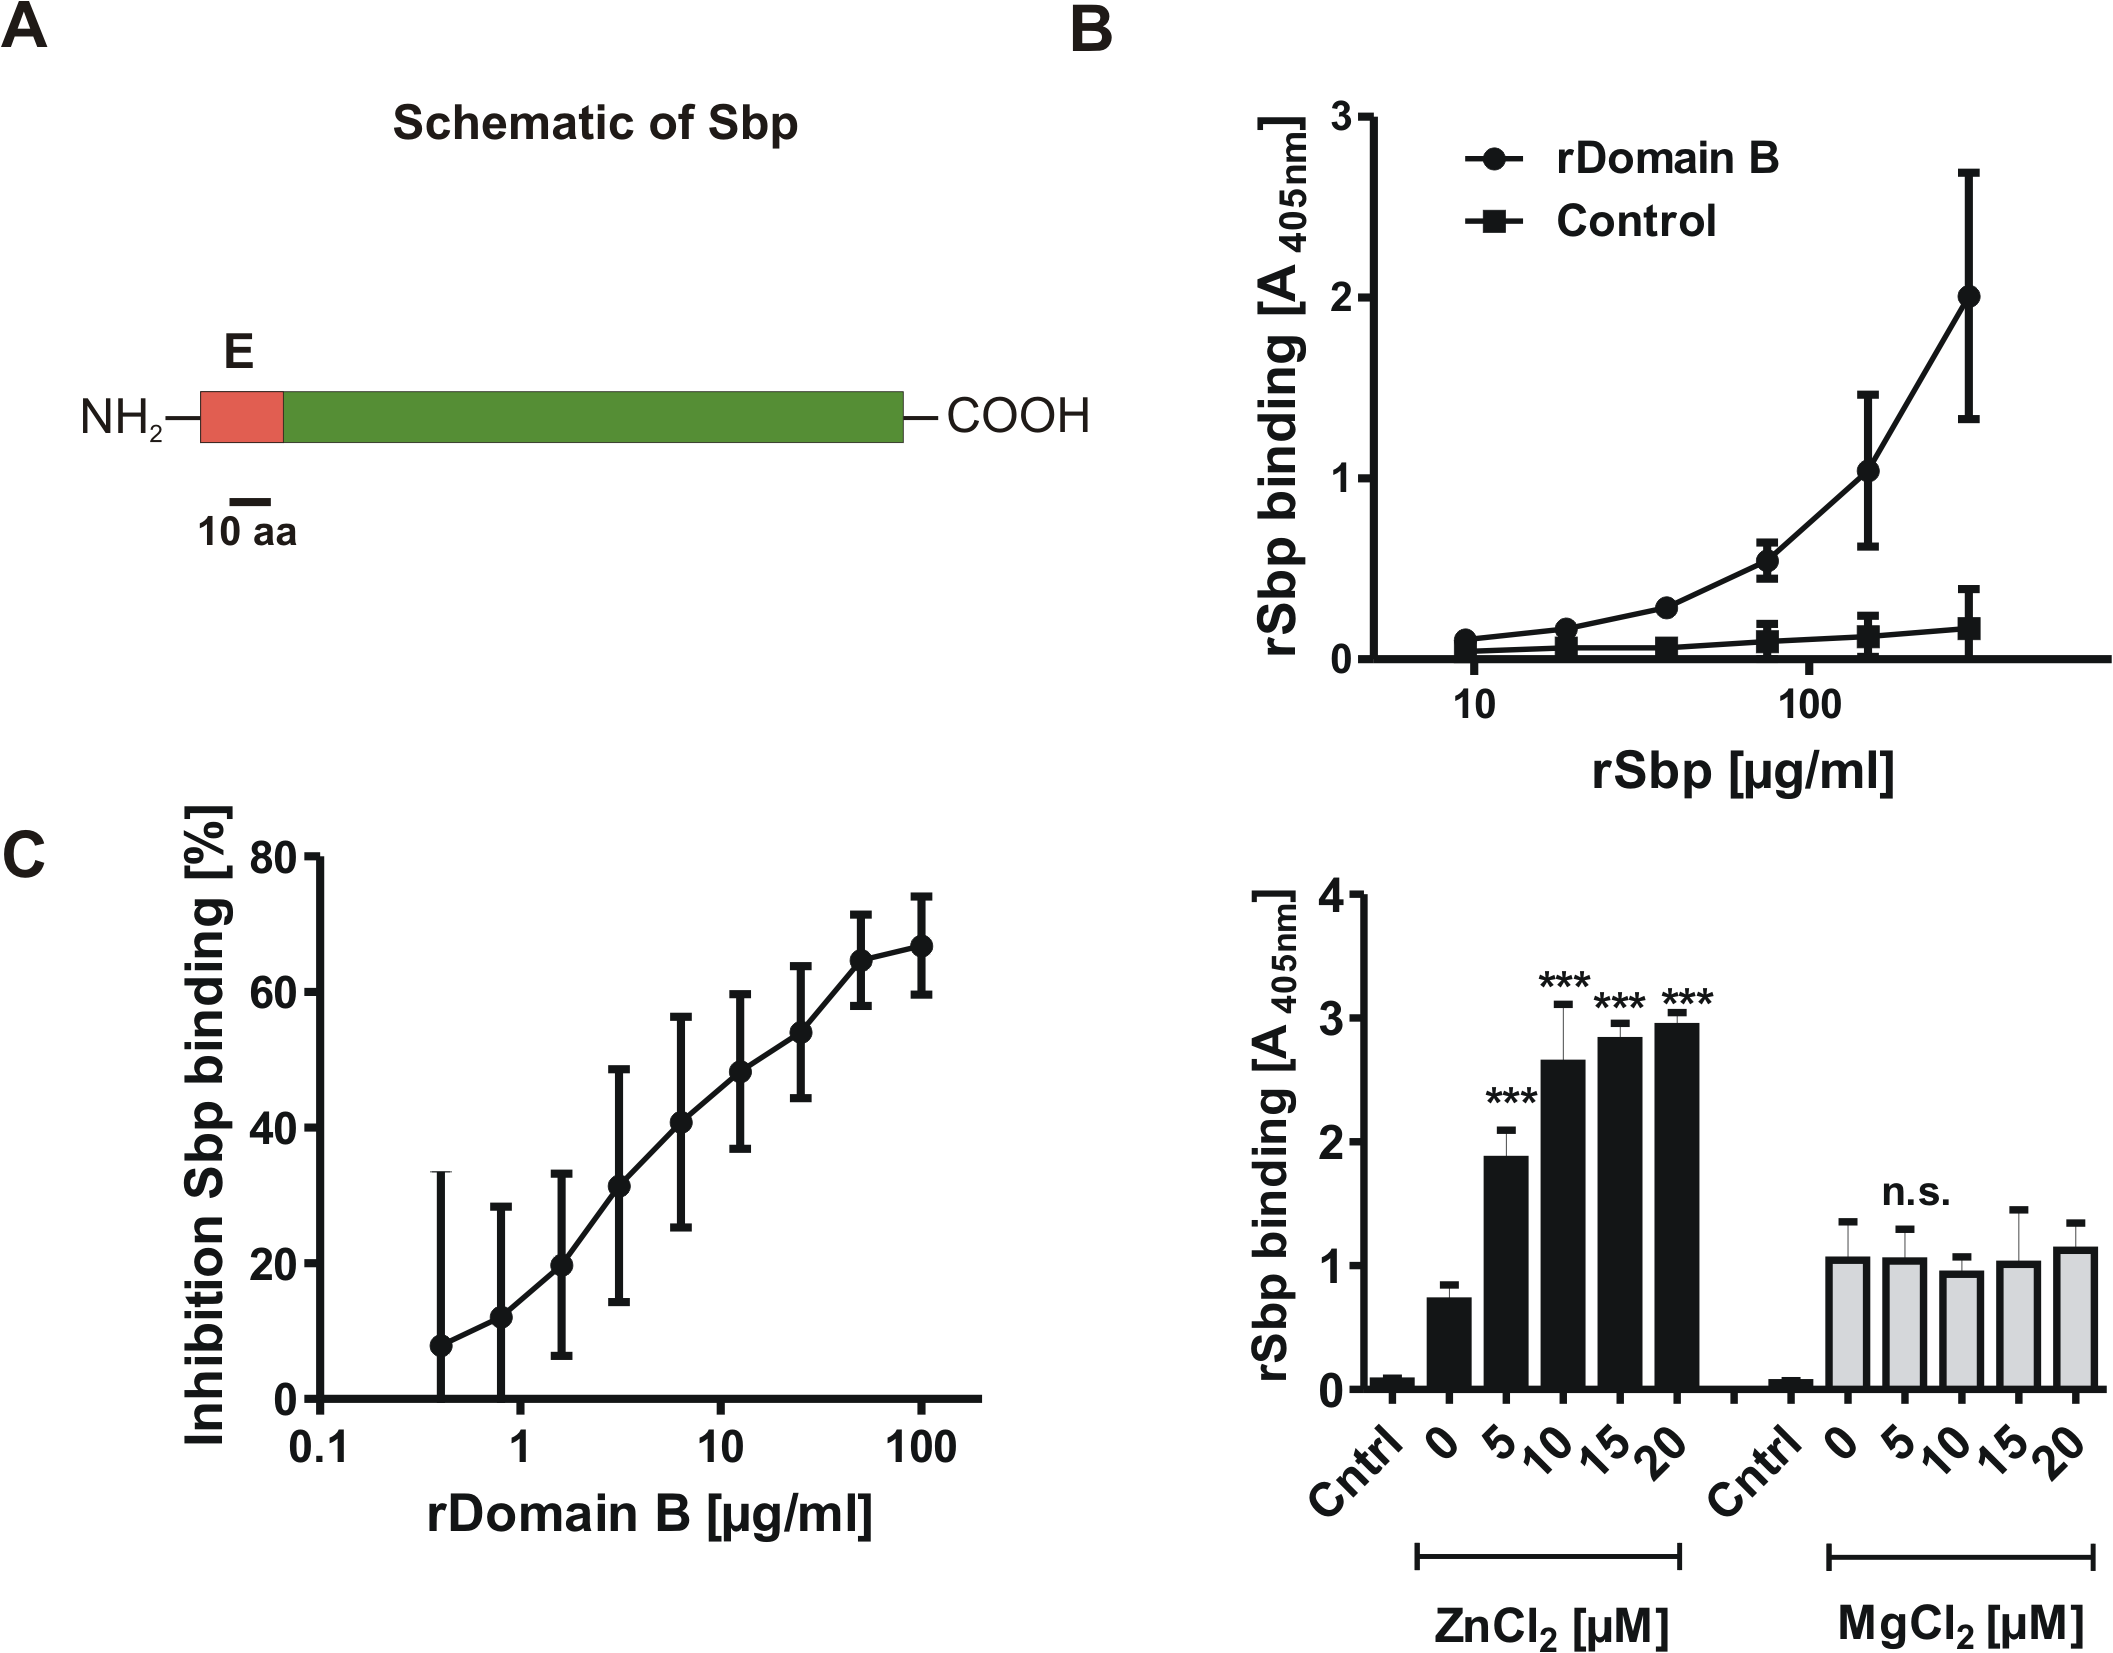 General features of Small basic protein (Sbp) and Biochemical analysis of rDomain-B—Sbp interactions.